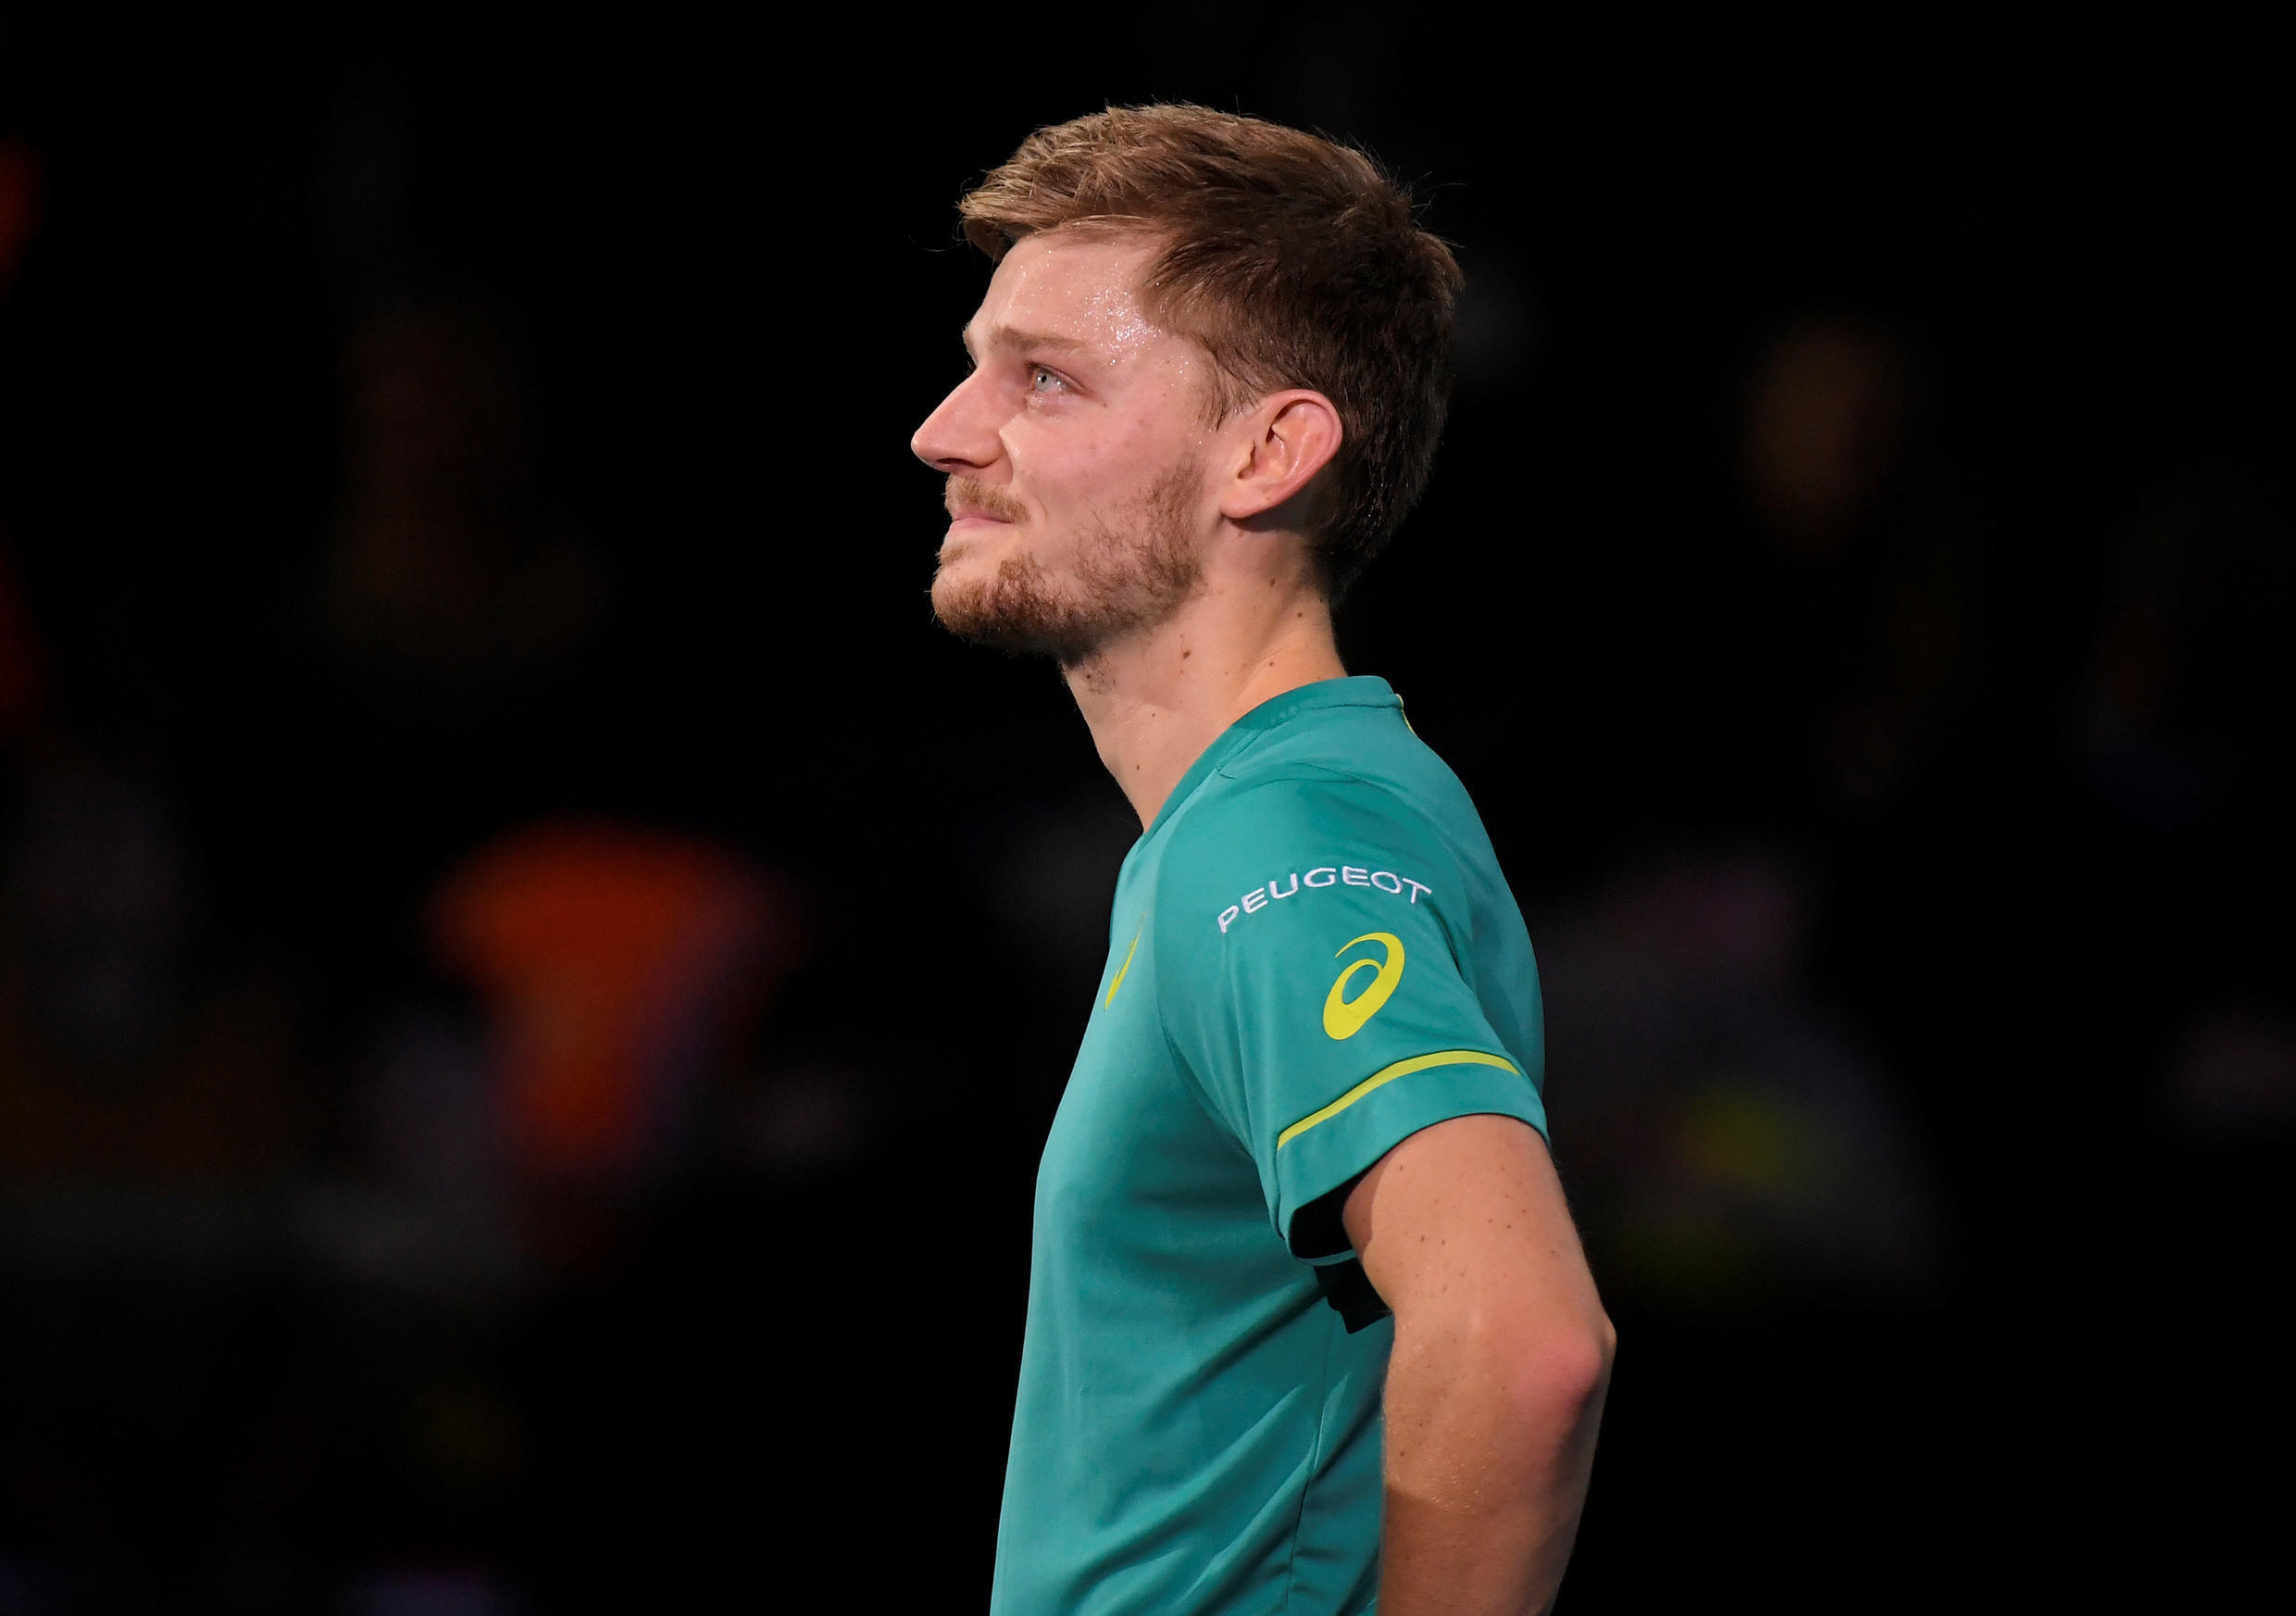 David Goffin is only the sixth player to overcome Roger Federer and Rafael Nadal in the same tournament.